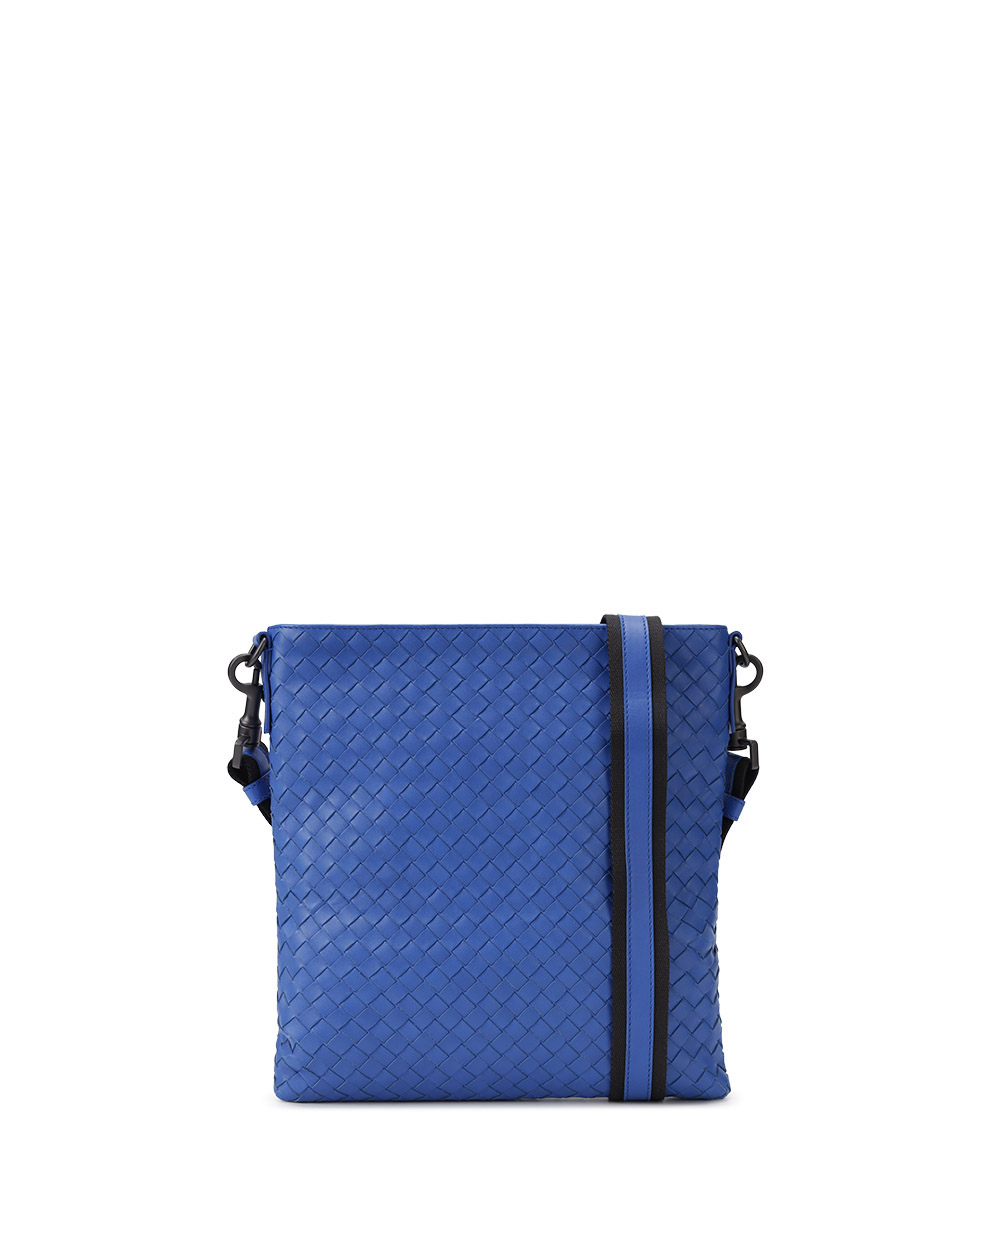 Woven Lamb Leather Shoulder Bag